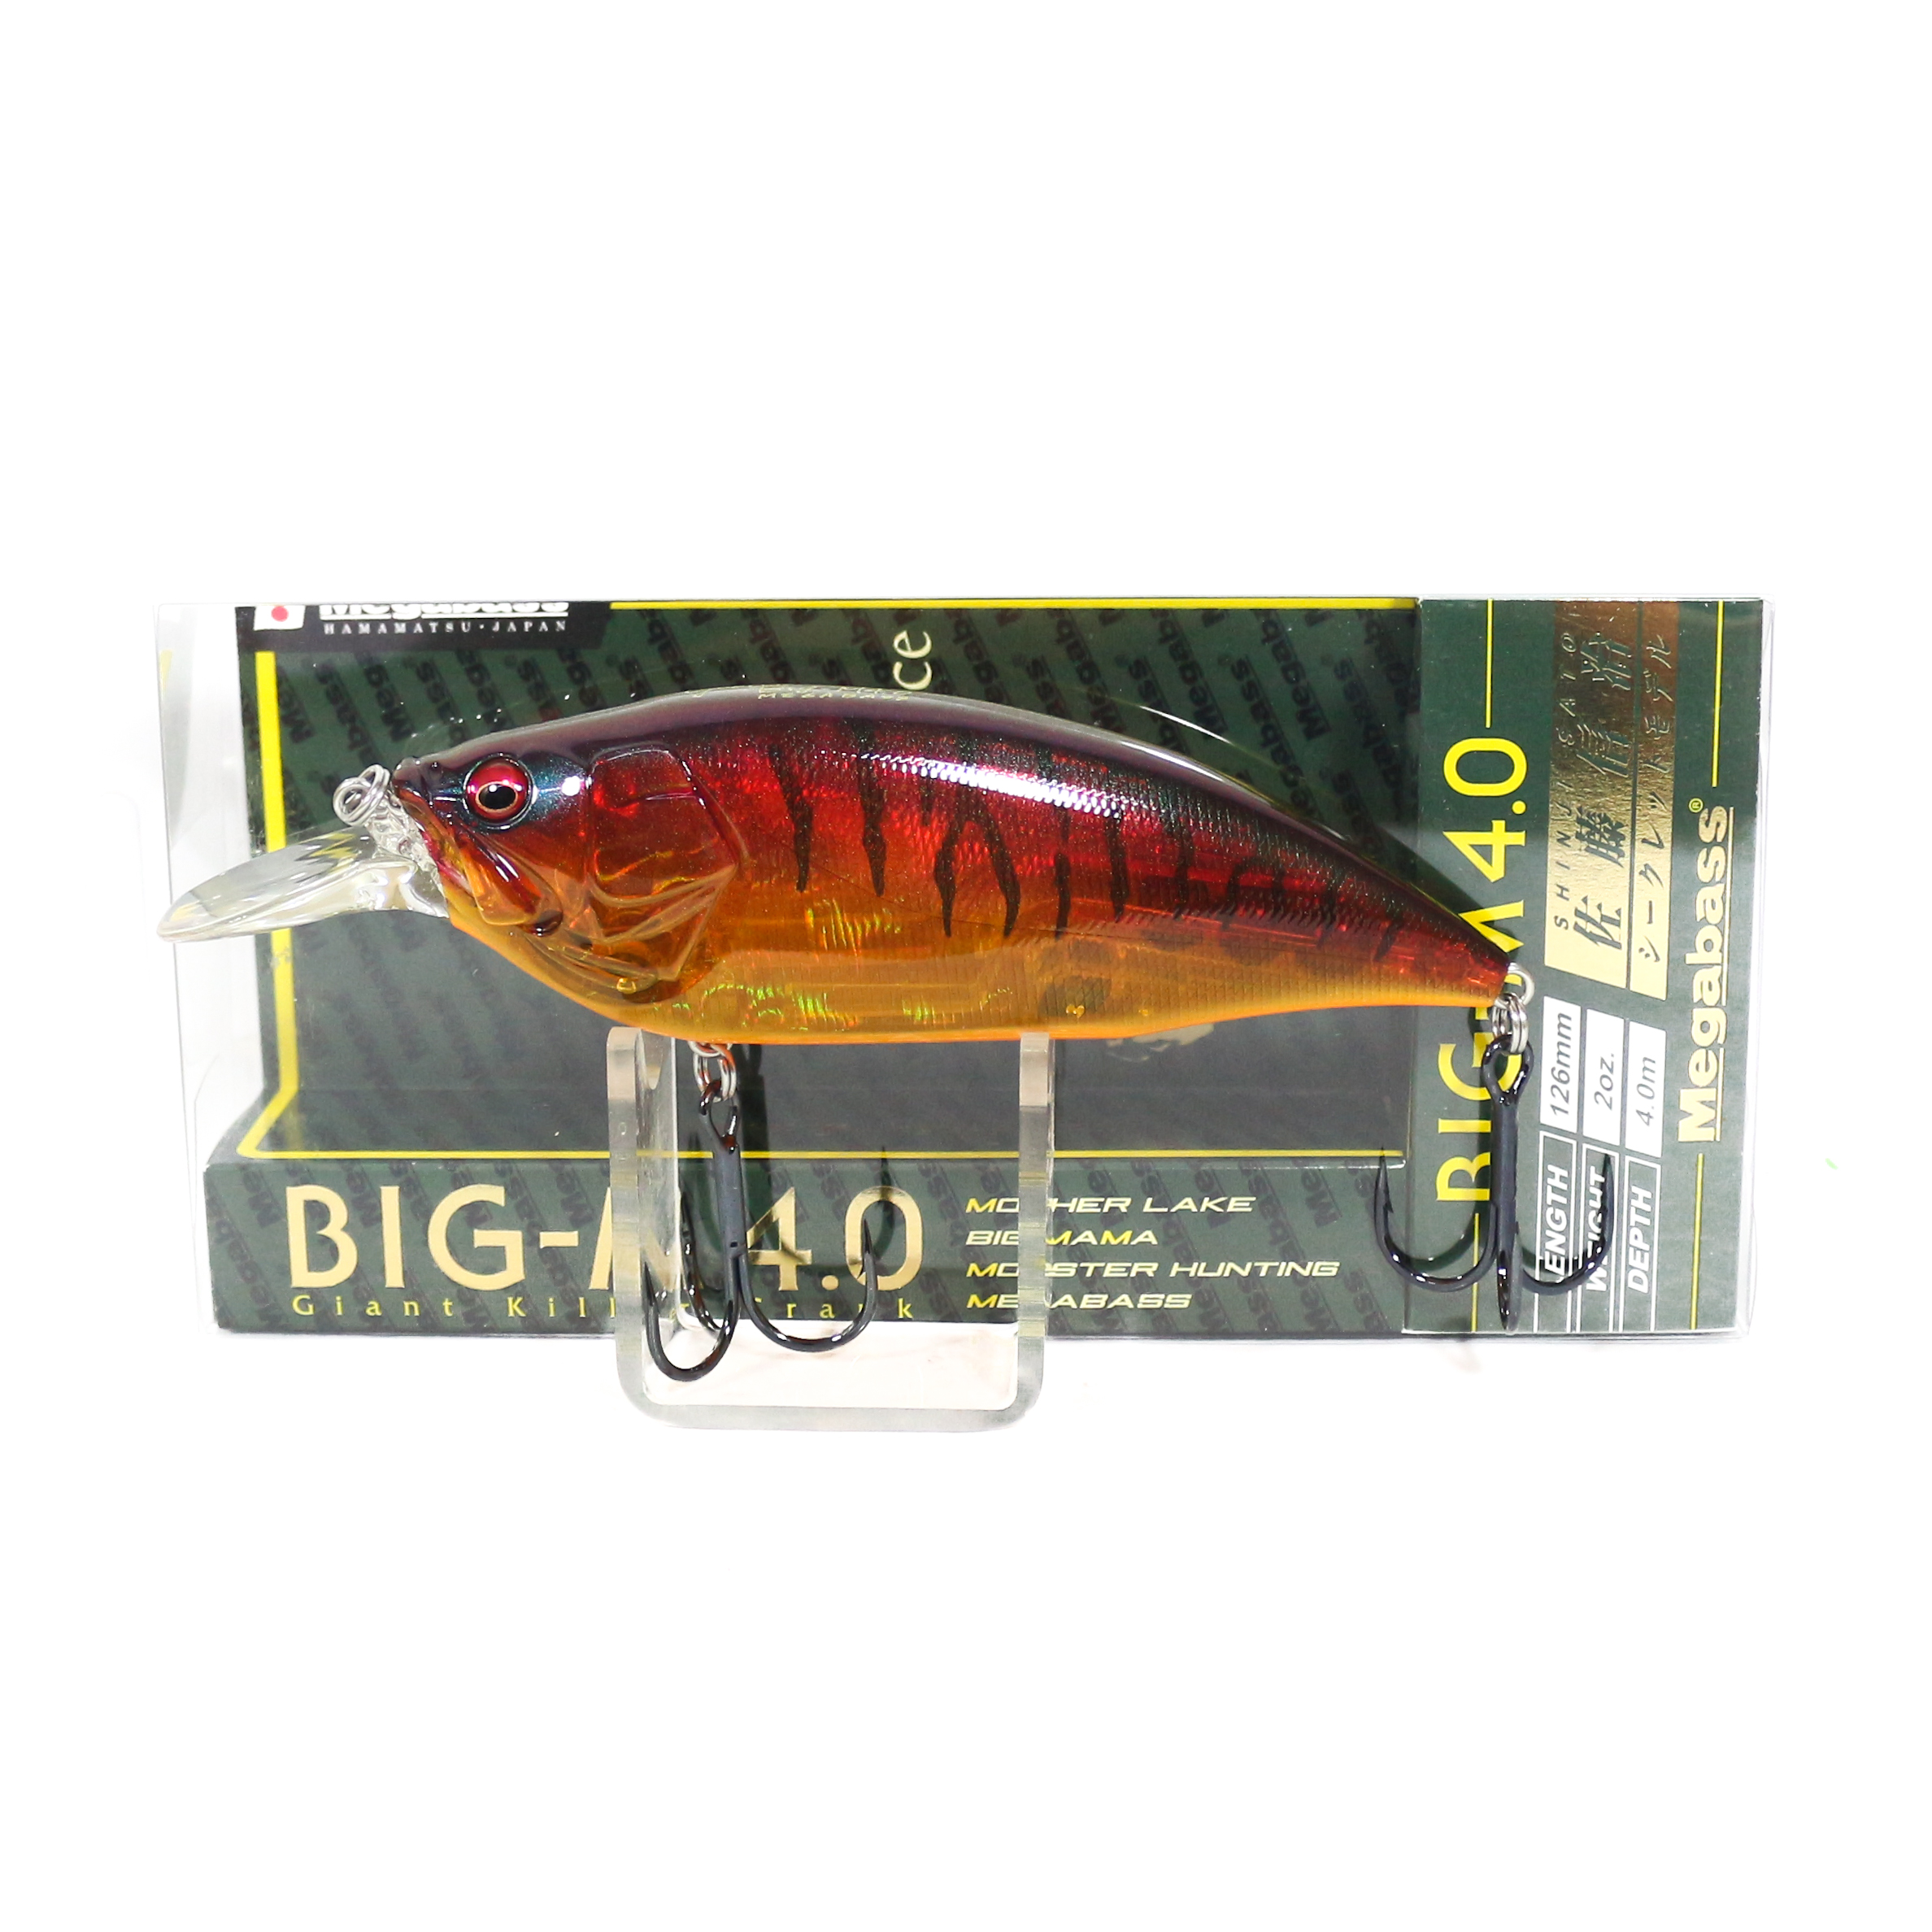 Megabass Big M 4.0 Giant Crank 126 mm Floating Lure GP Spawn Killer (3211)